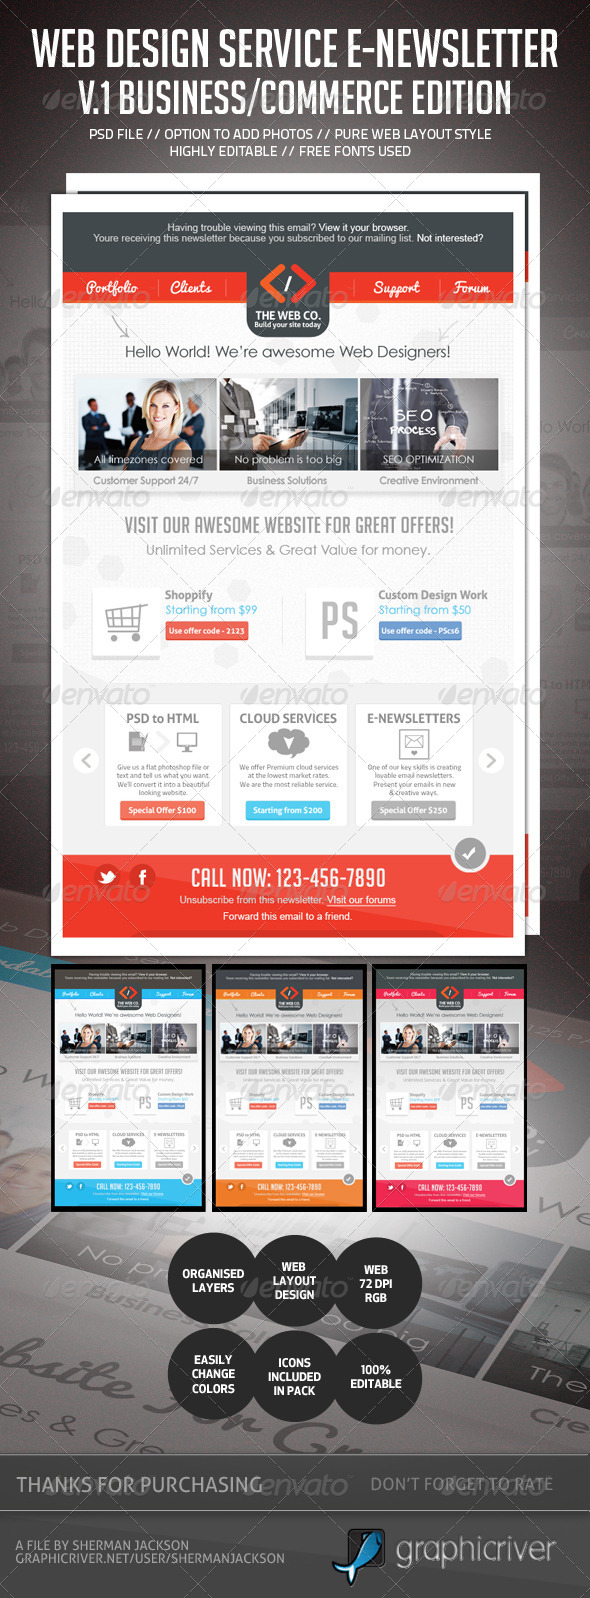 GraphicRiver Web Design Business Service E-Newsletter V.1 4611396